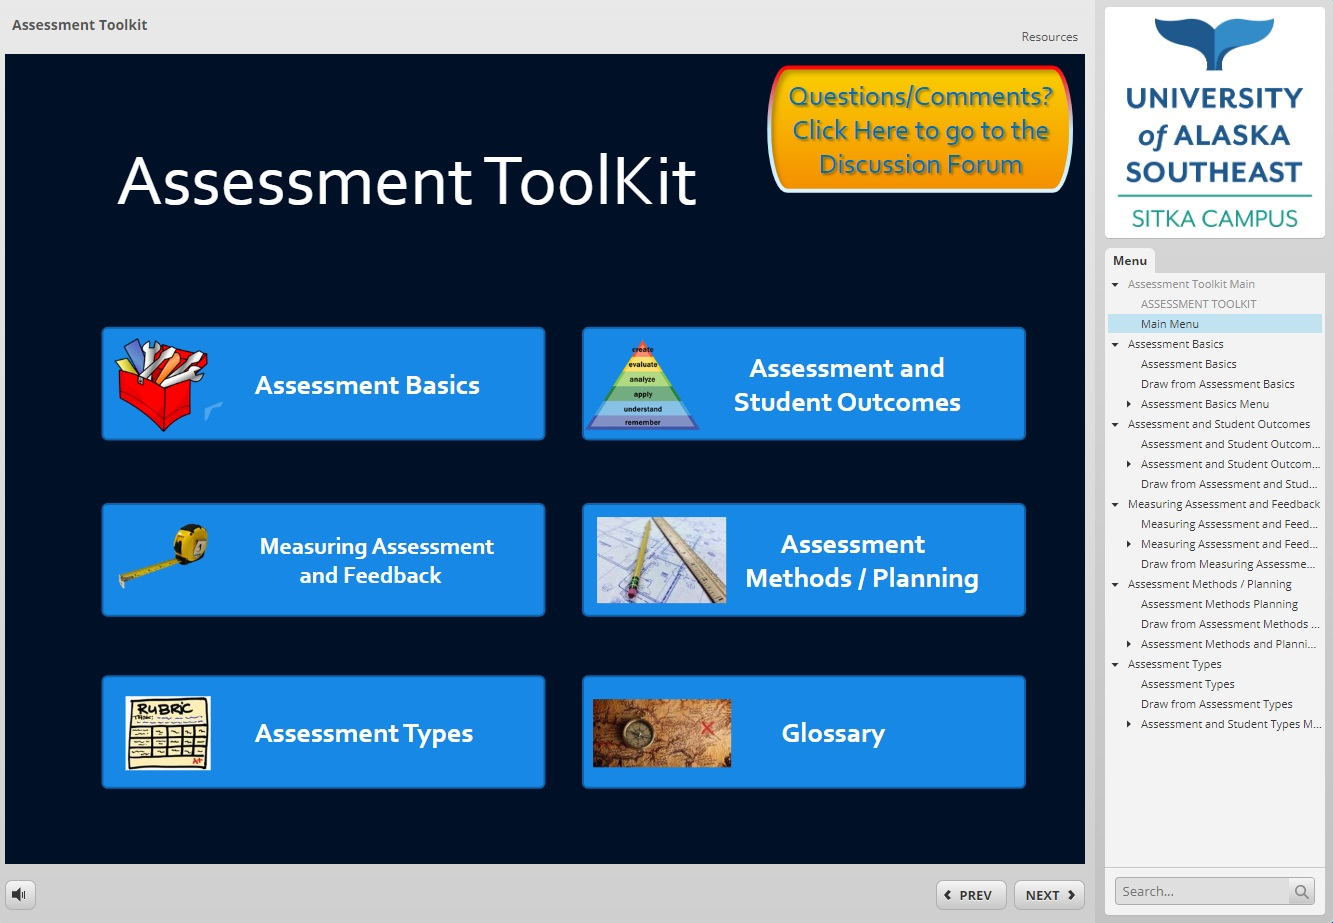 Main Page of the Assessment Toolkit